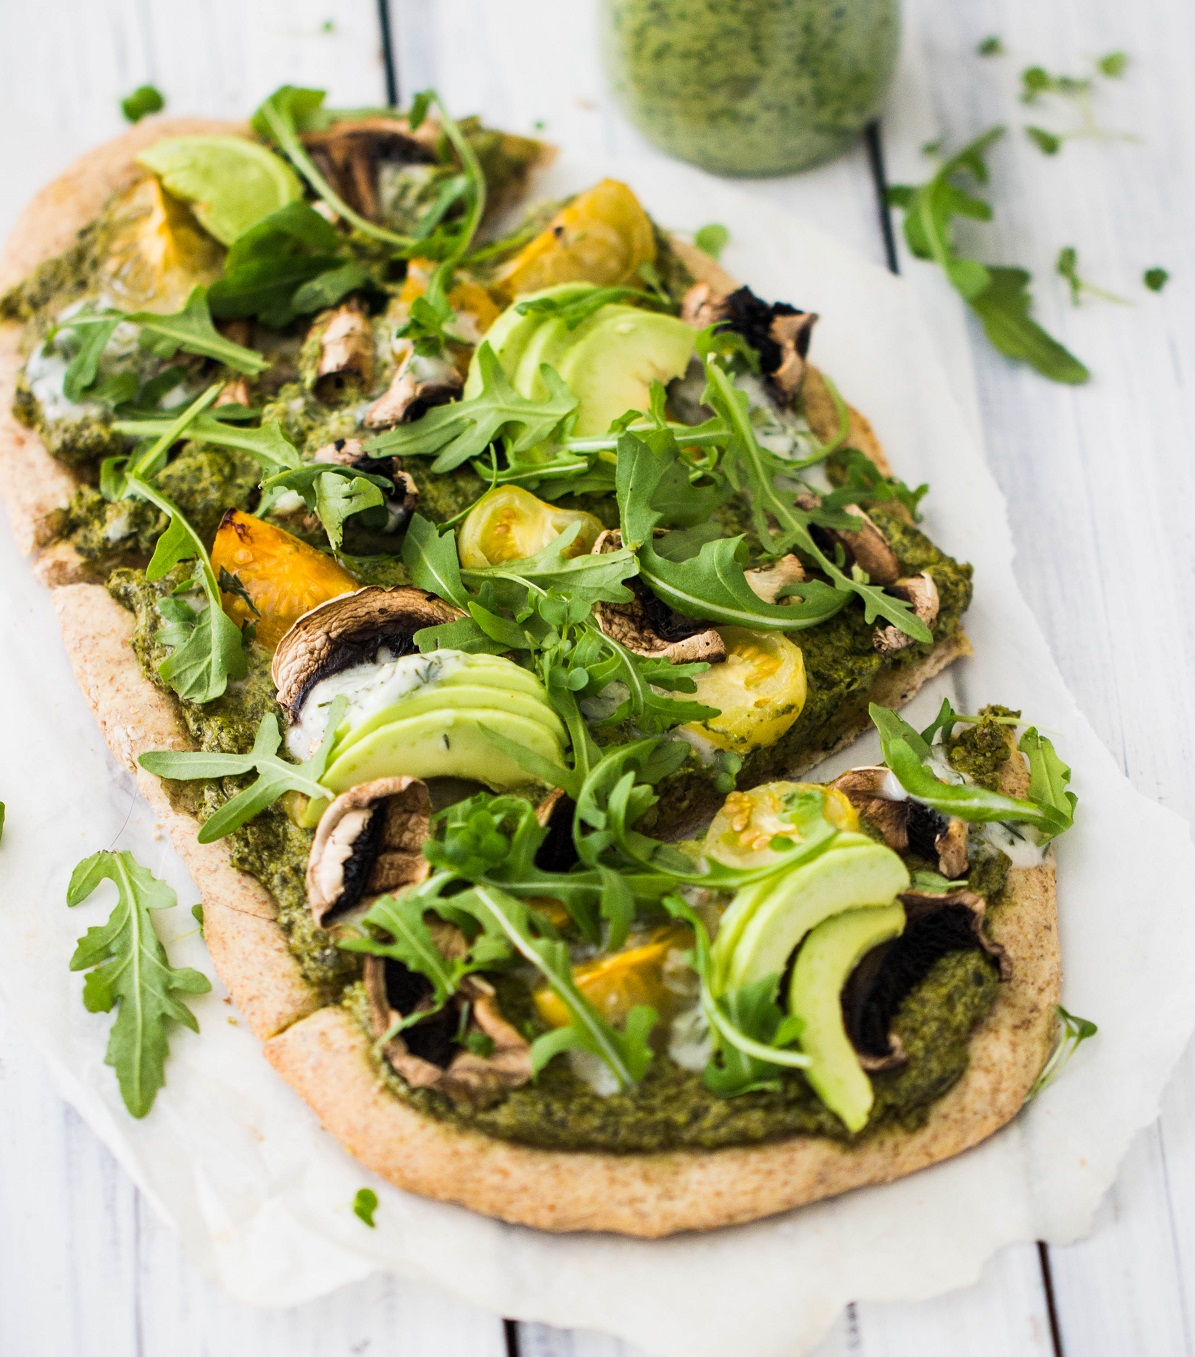 Recipe for the weekend: Rye flatbread pizza with spinach pesto and avocado